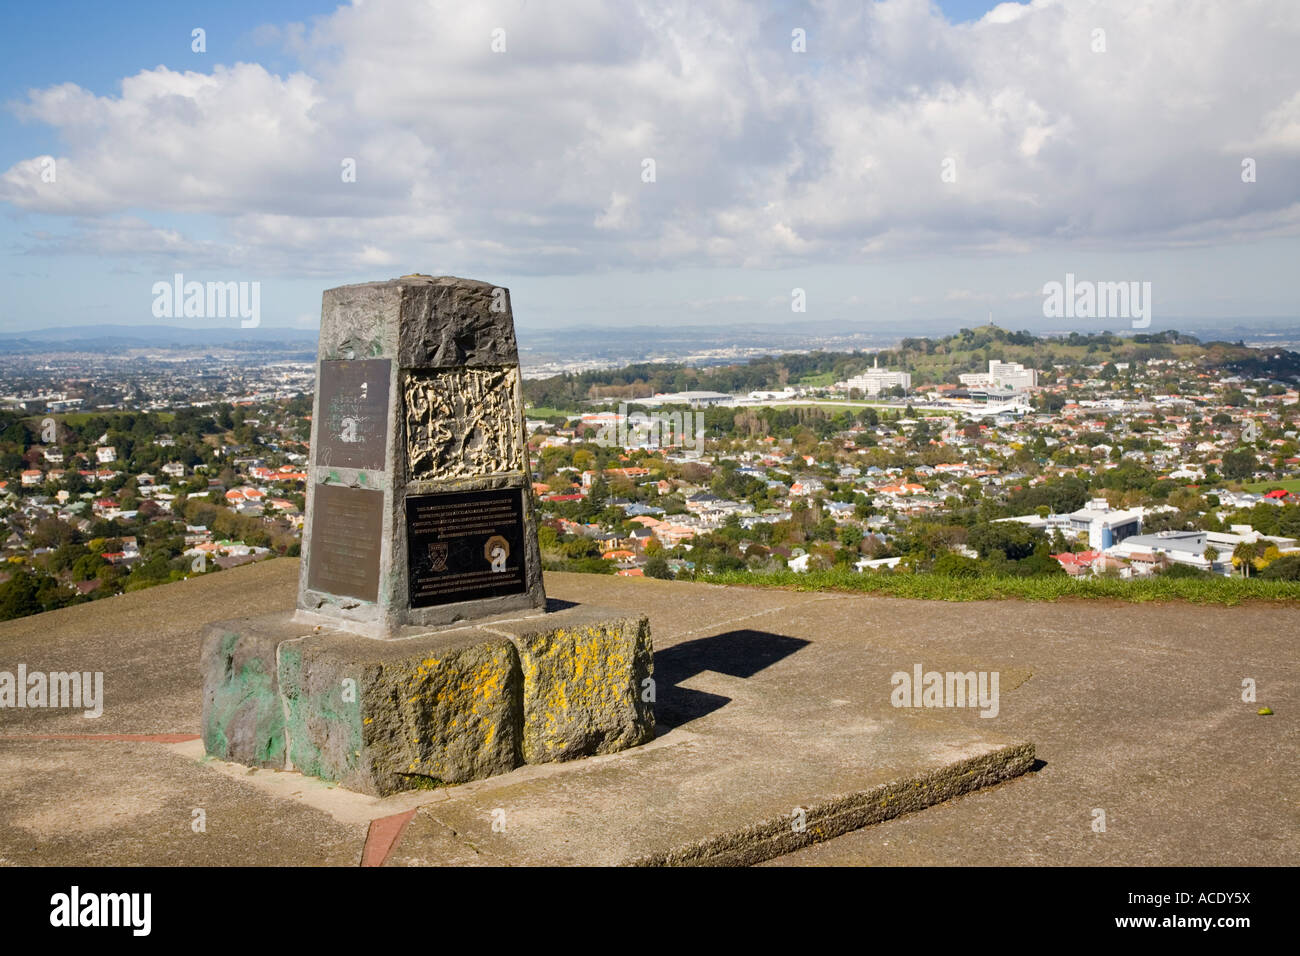 Mount Eden Domain Maungawhau summit stone obelisk memorial at viewpoint on dormant volcanic cone Auckland New Zealand - Stock Image